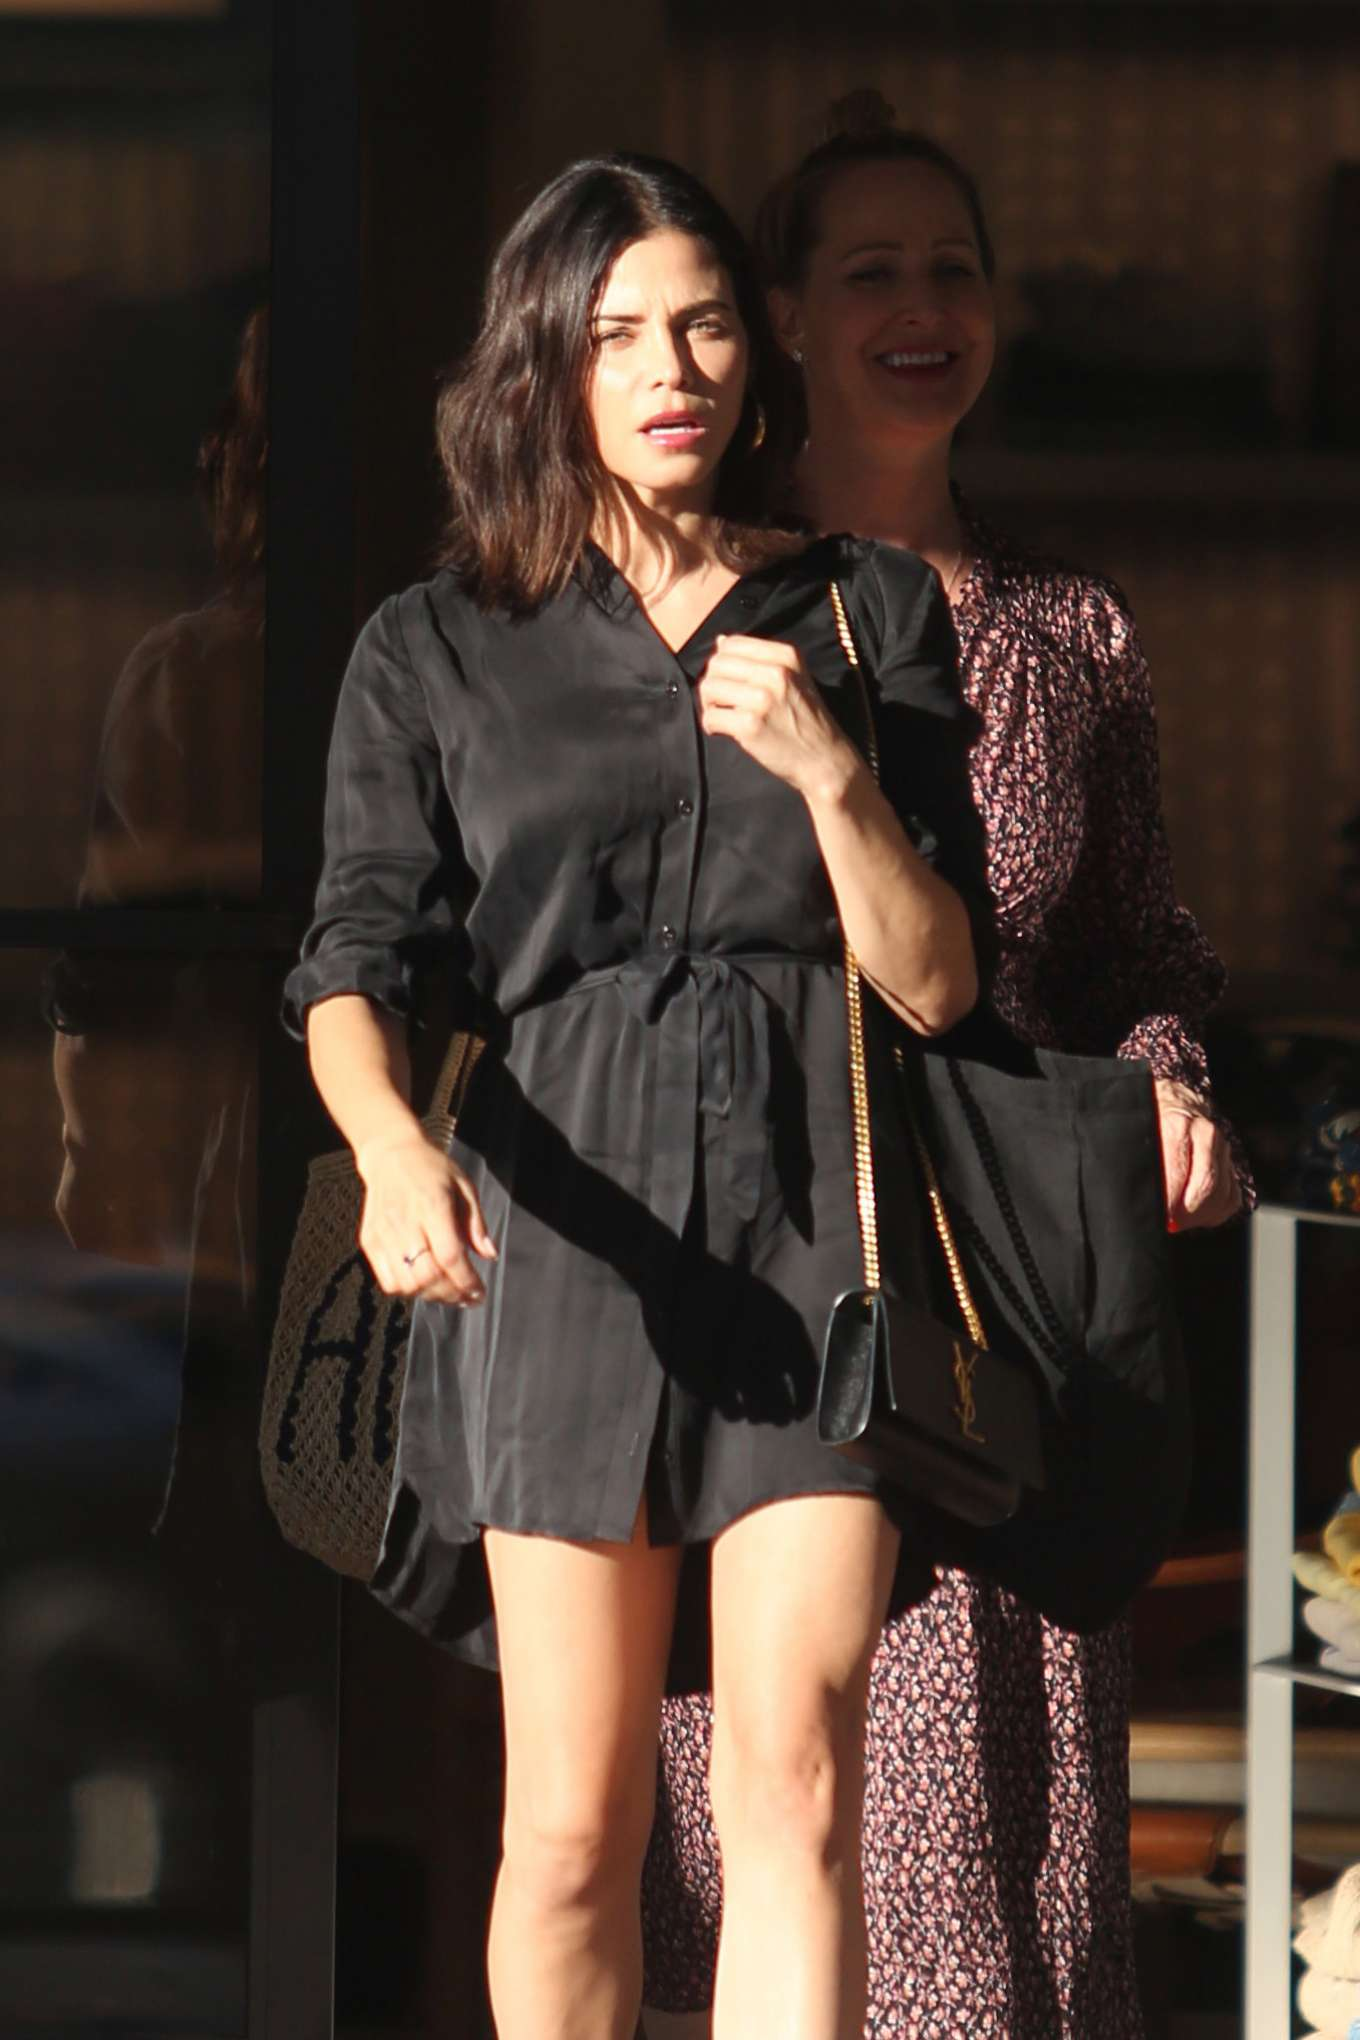 Jenna Dewan in mini black dress heading to Sushi restaurant in LA